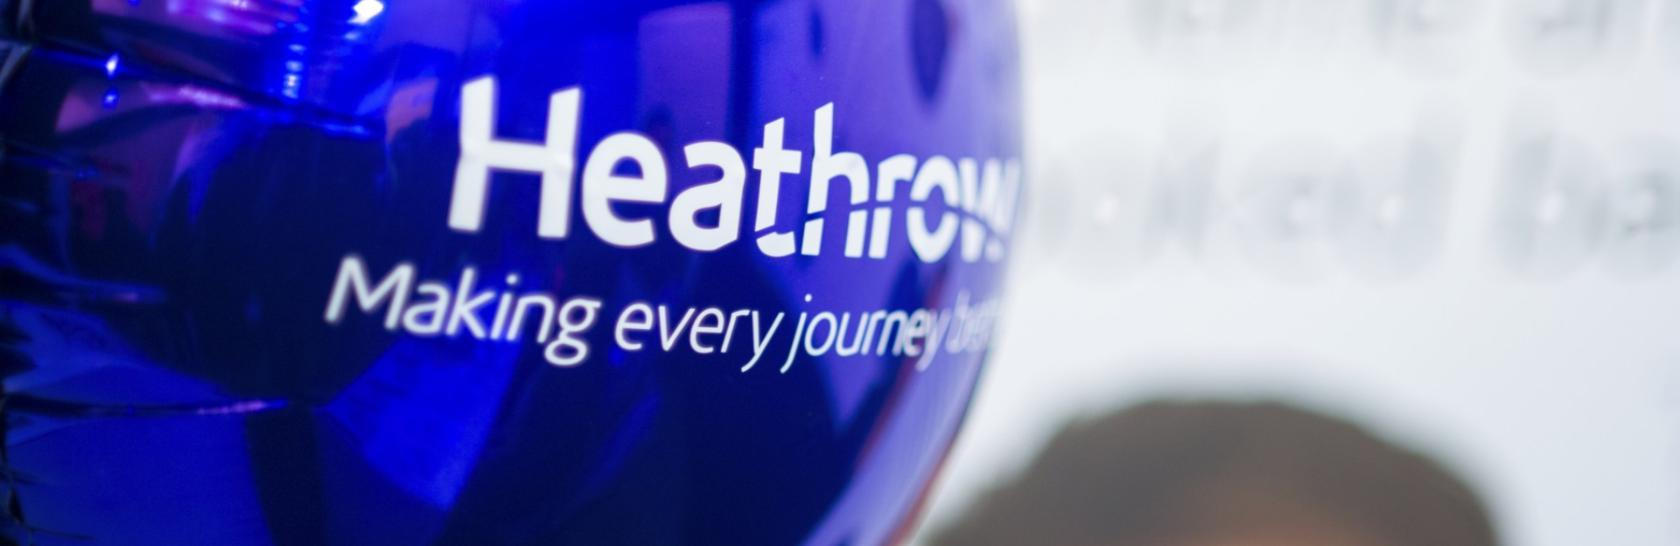 Heathrow balloon